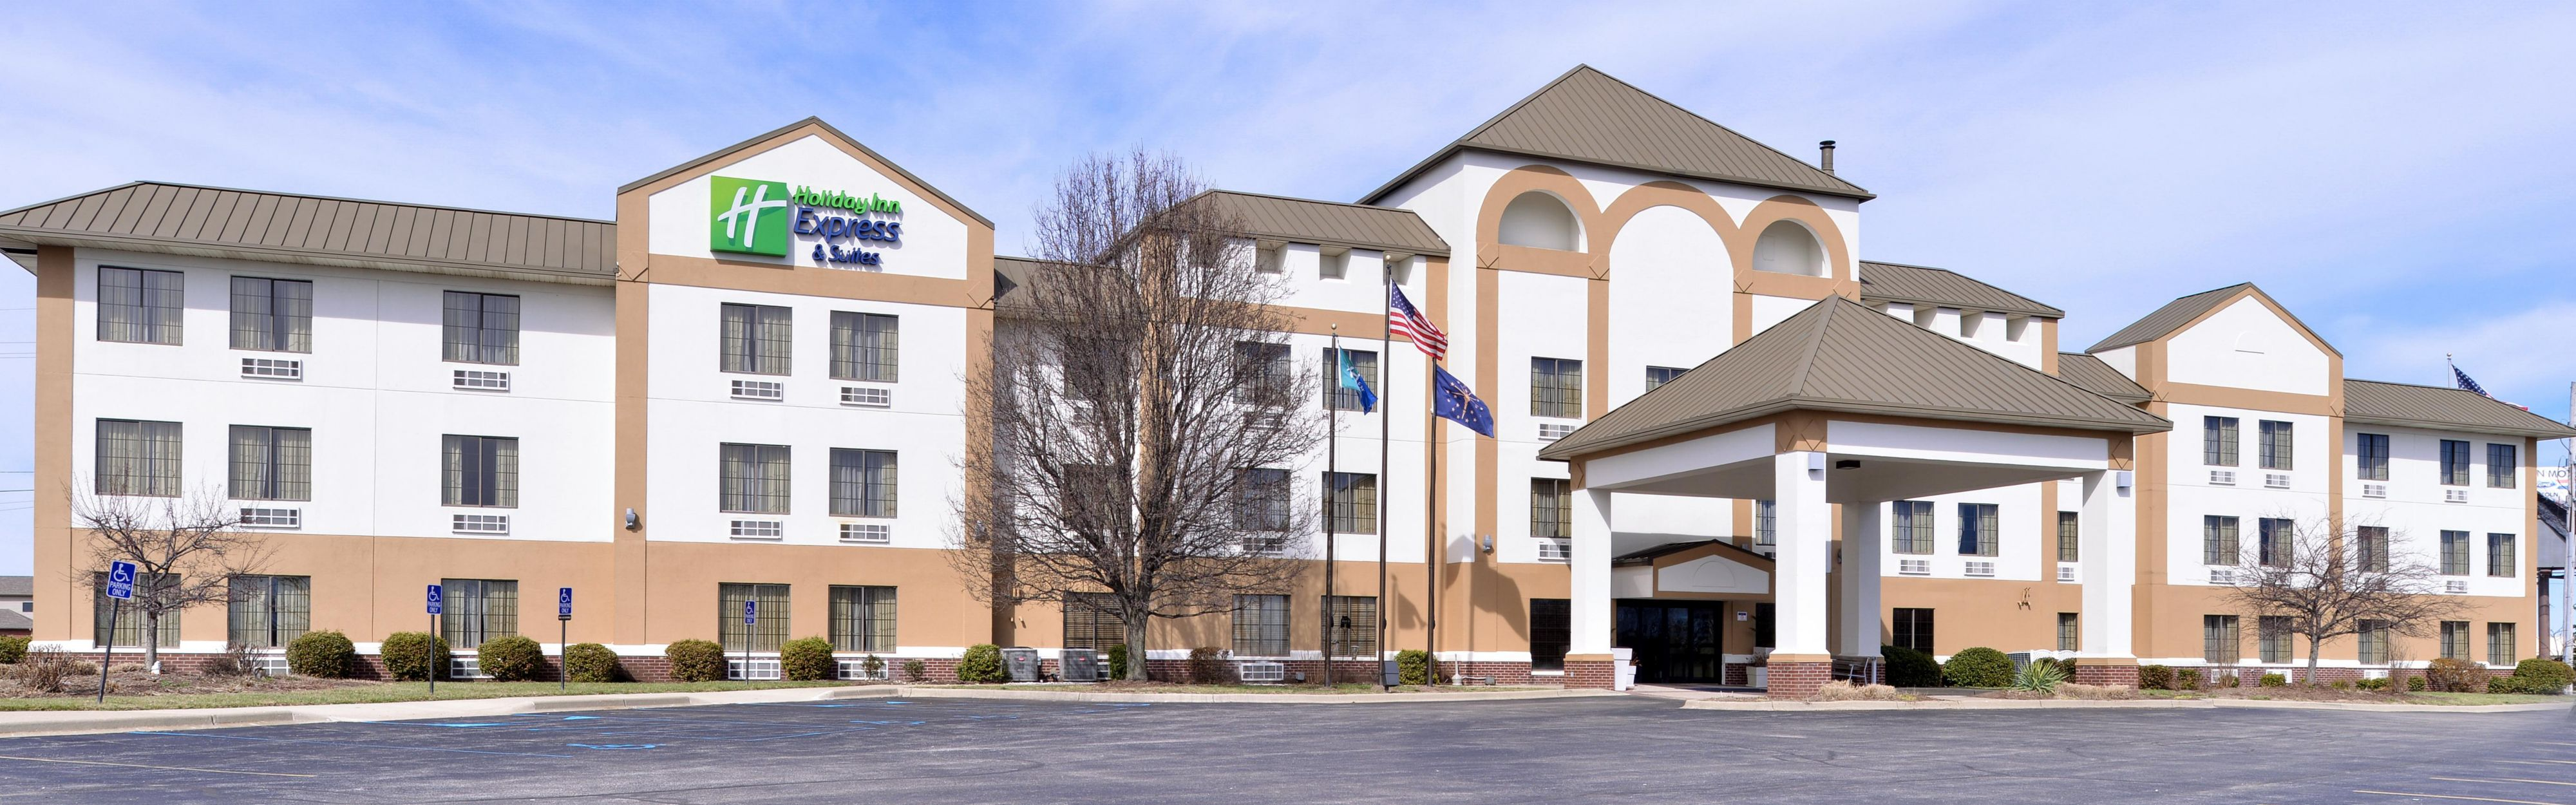 Holiday Inn Express & Suites Madison image 0